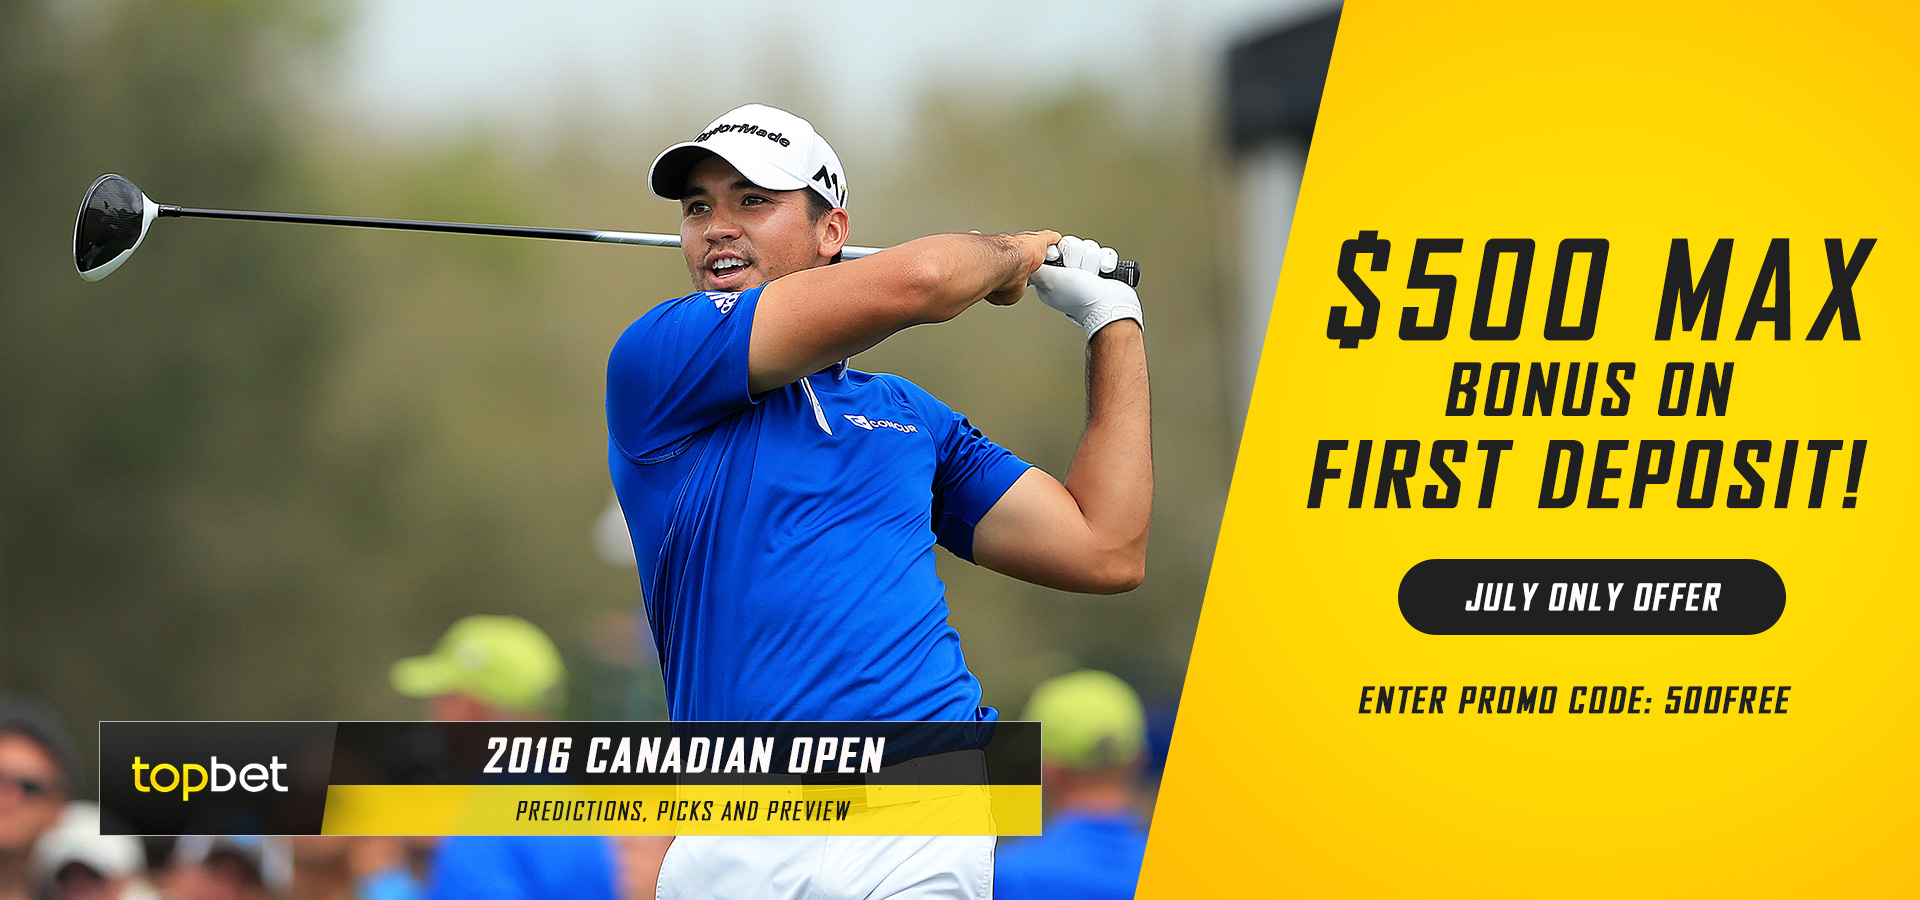 2016 Rbc Canadian Open Predictions Picks And Pga Preview